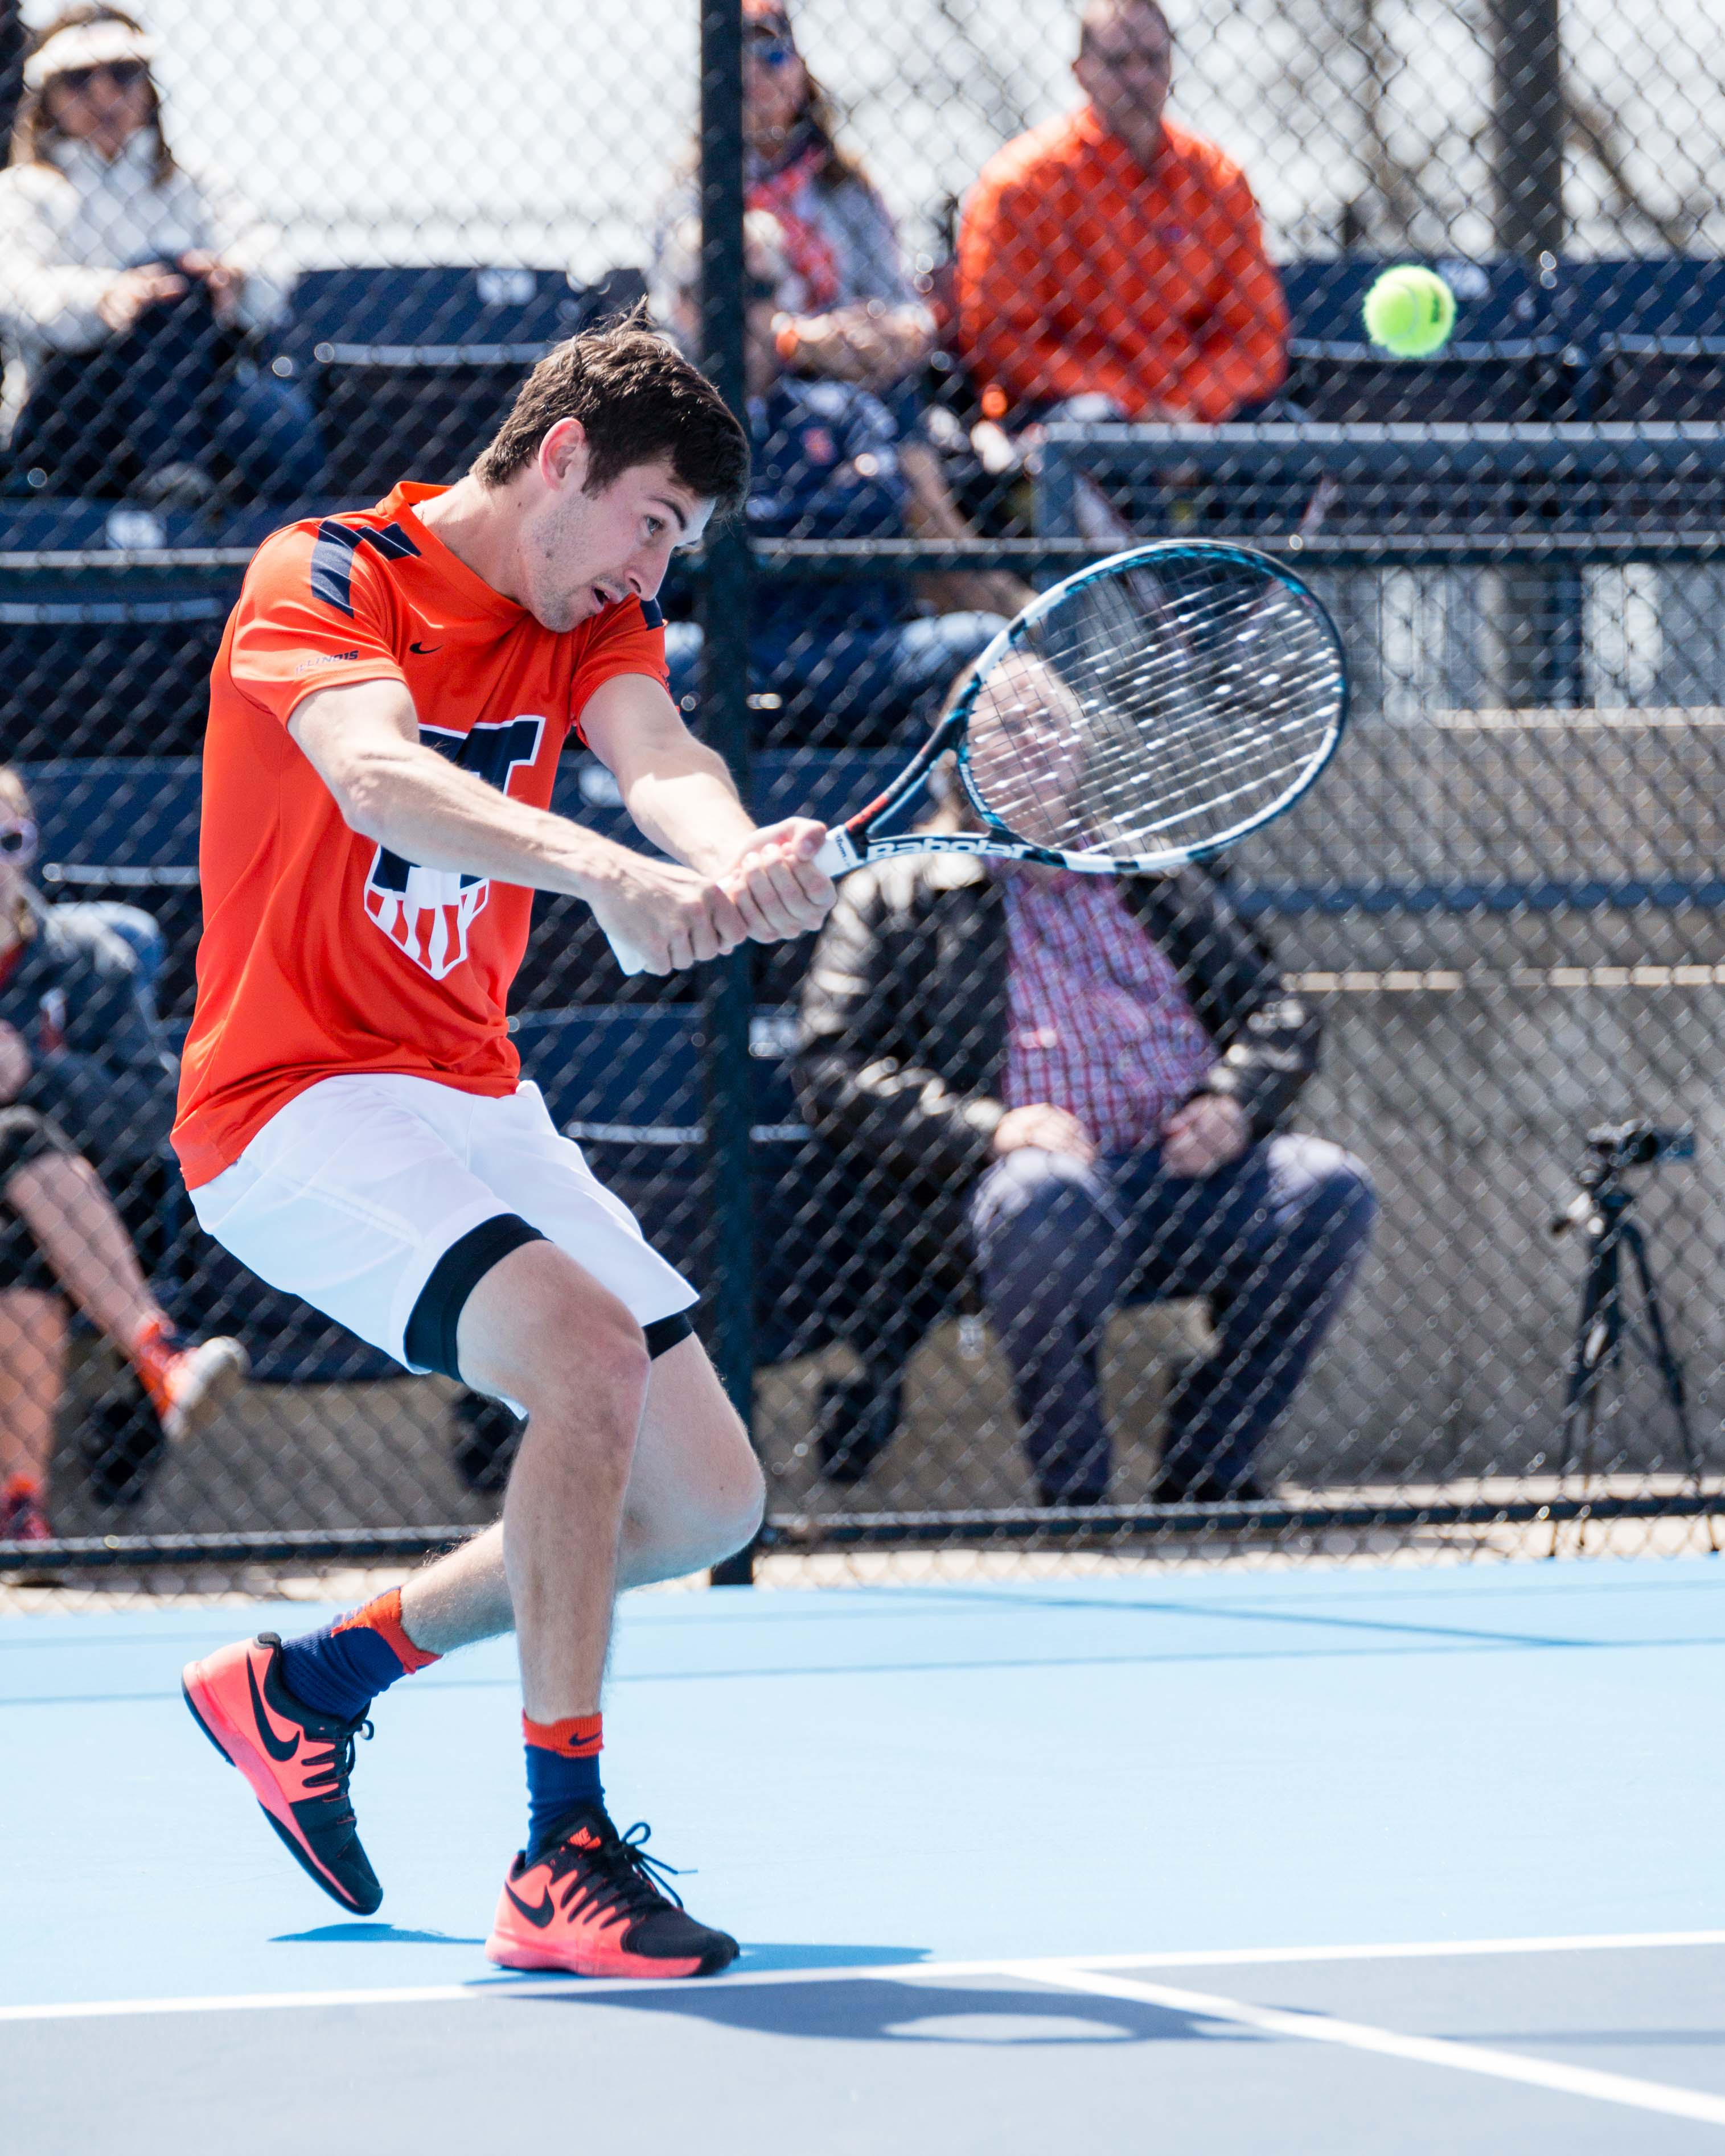 Illinois' Alex Jesse returns a ball against Iowa at the Atkins Tennis Center on Saturday. Illinois is on a three-game win streak after defeating Iowa and Nebraska.